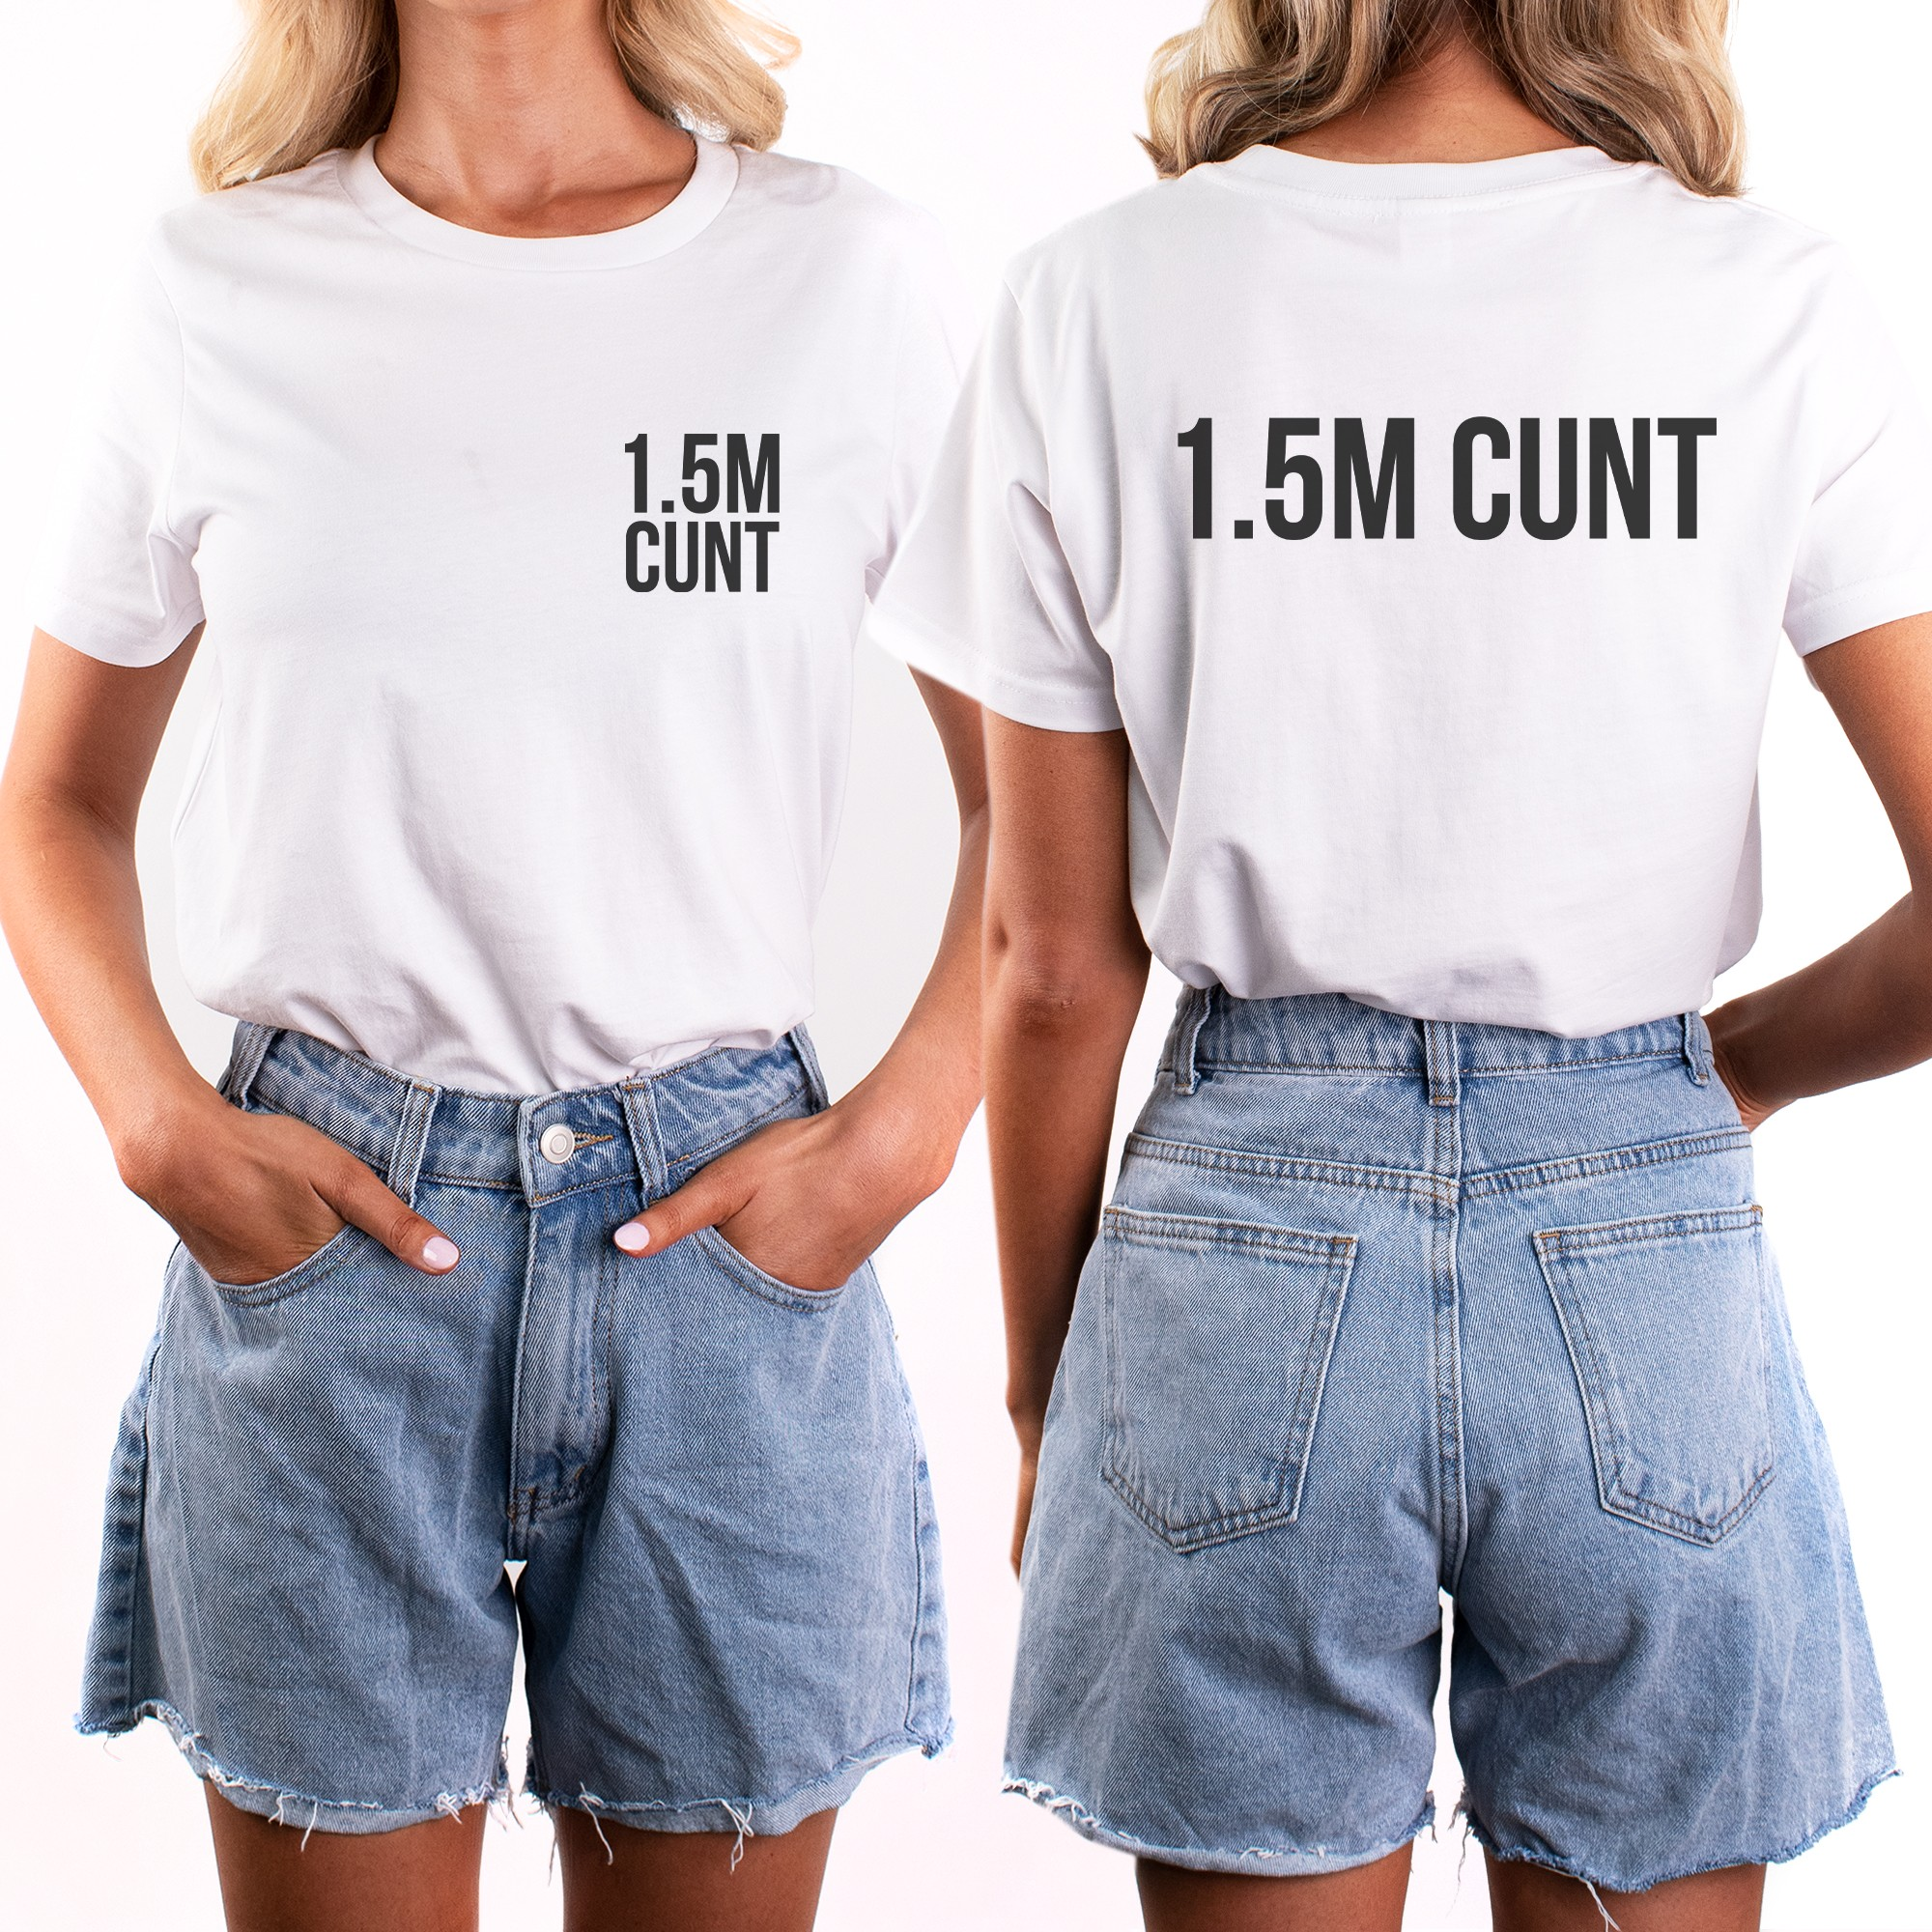 1.5M FRONT AND BACK WHITE TEE